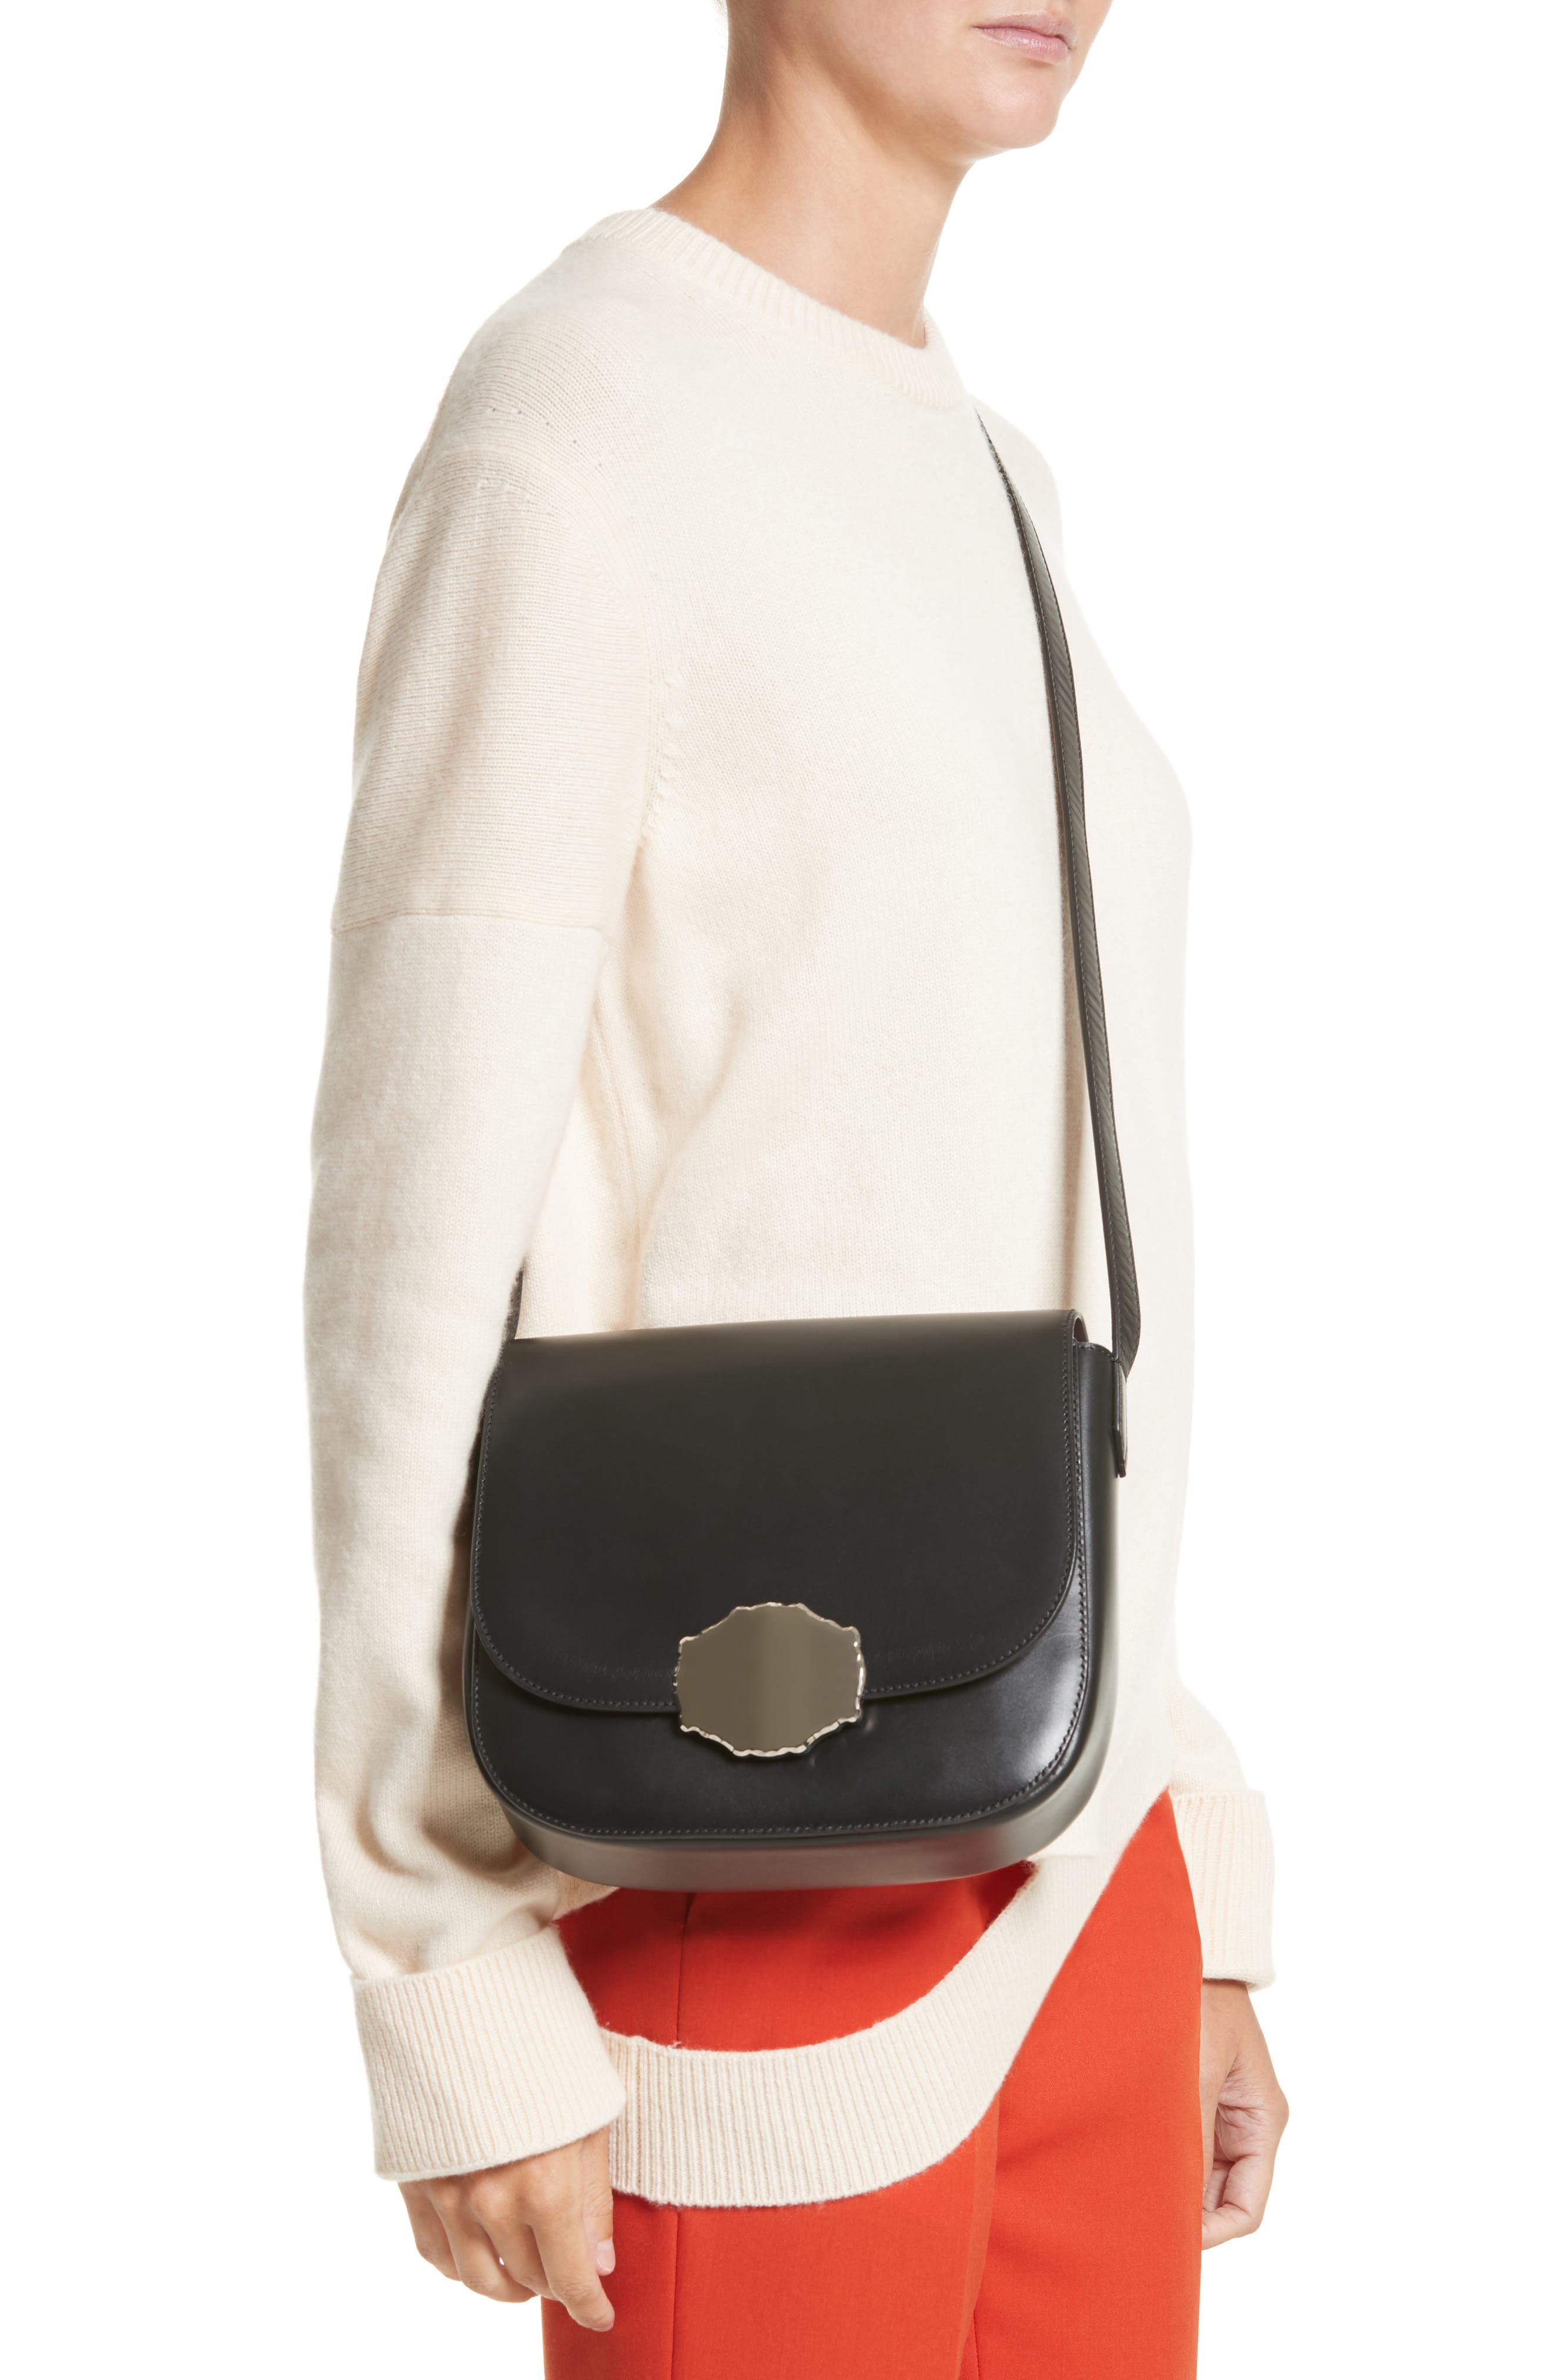 Calfksin Shoulder Bag by Calvin Klein 205 W39 Nyc